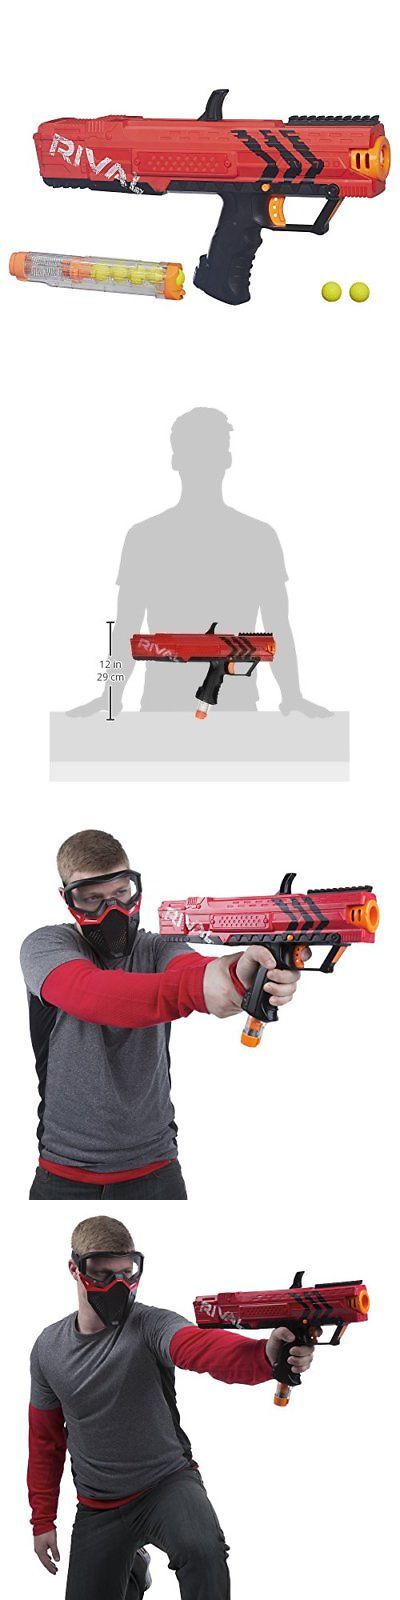 Dart Guns and Soft Darts 158749: Nerf Rival Apollo Xv-700 (Red) -> BUY IT NOW ONLY: $33.81 on eBay!